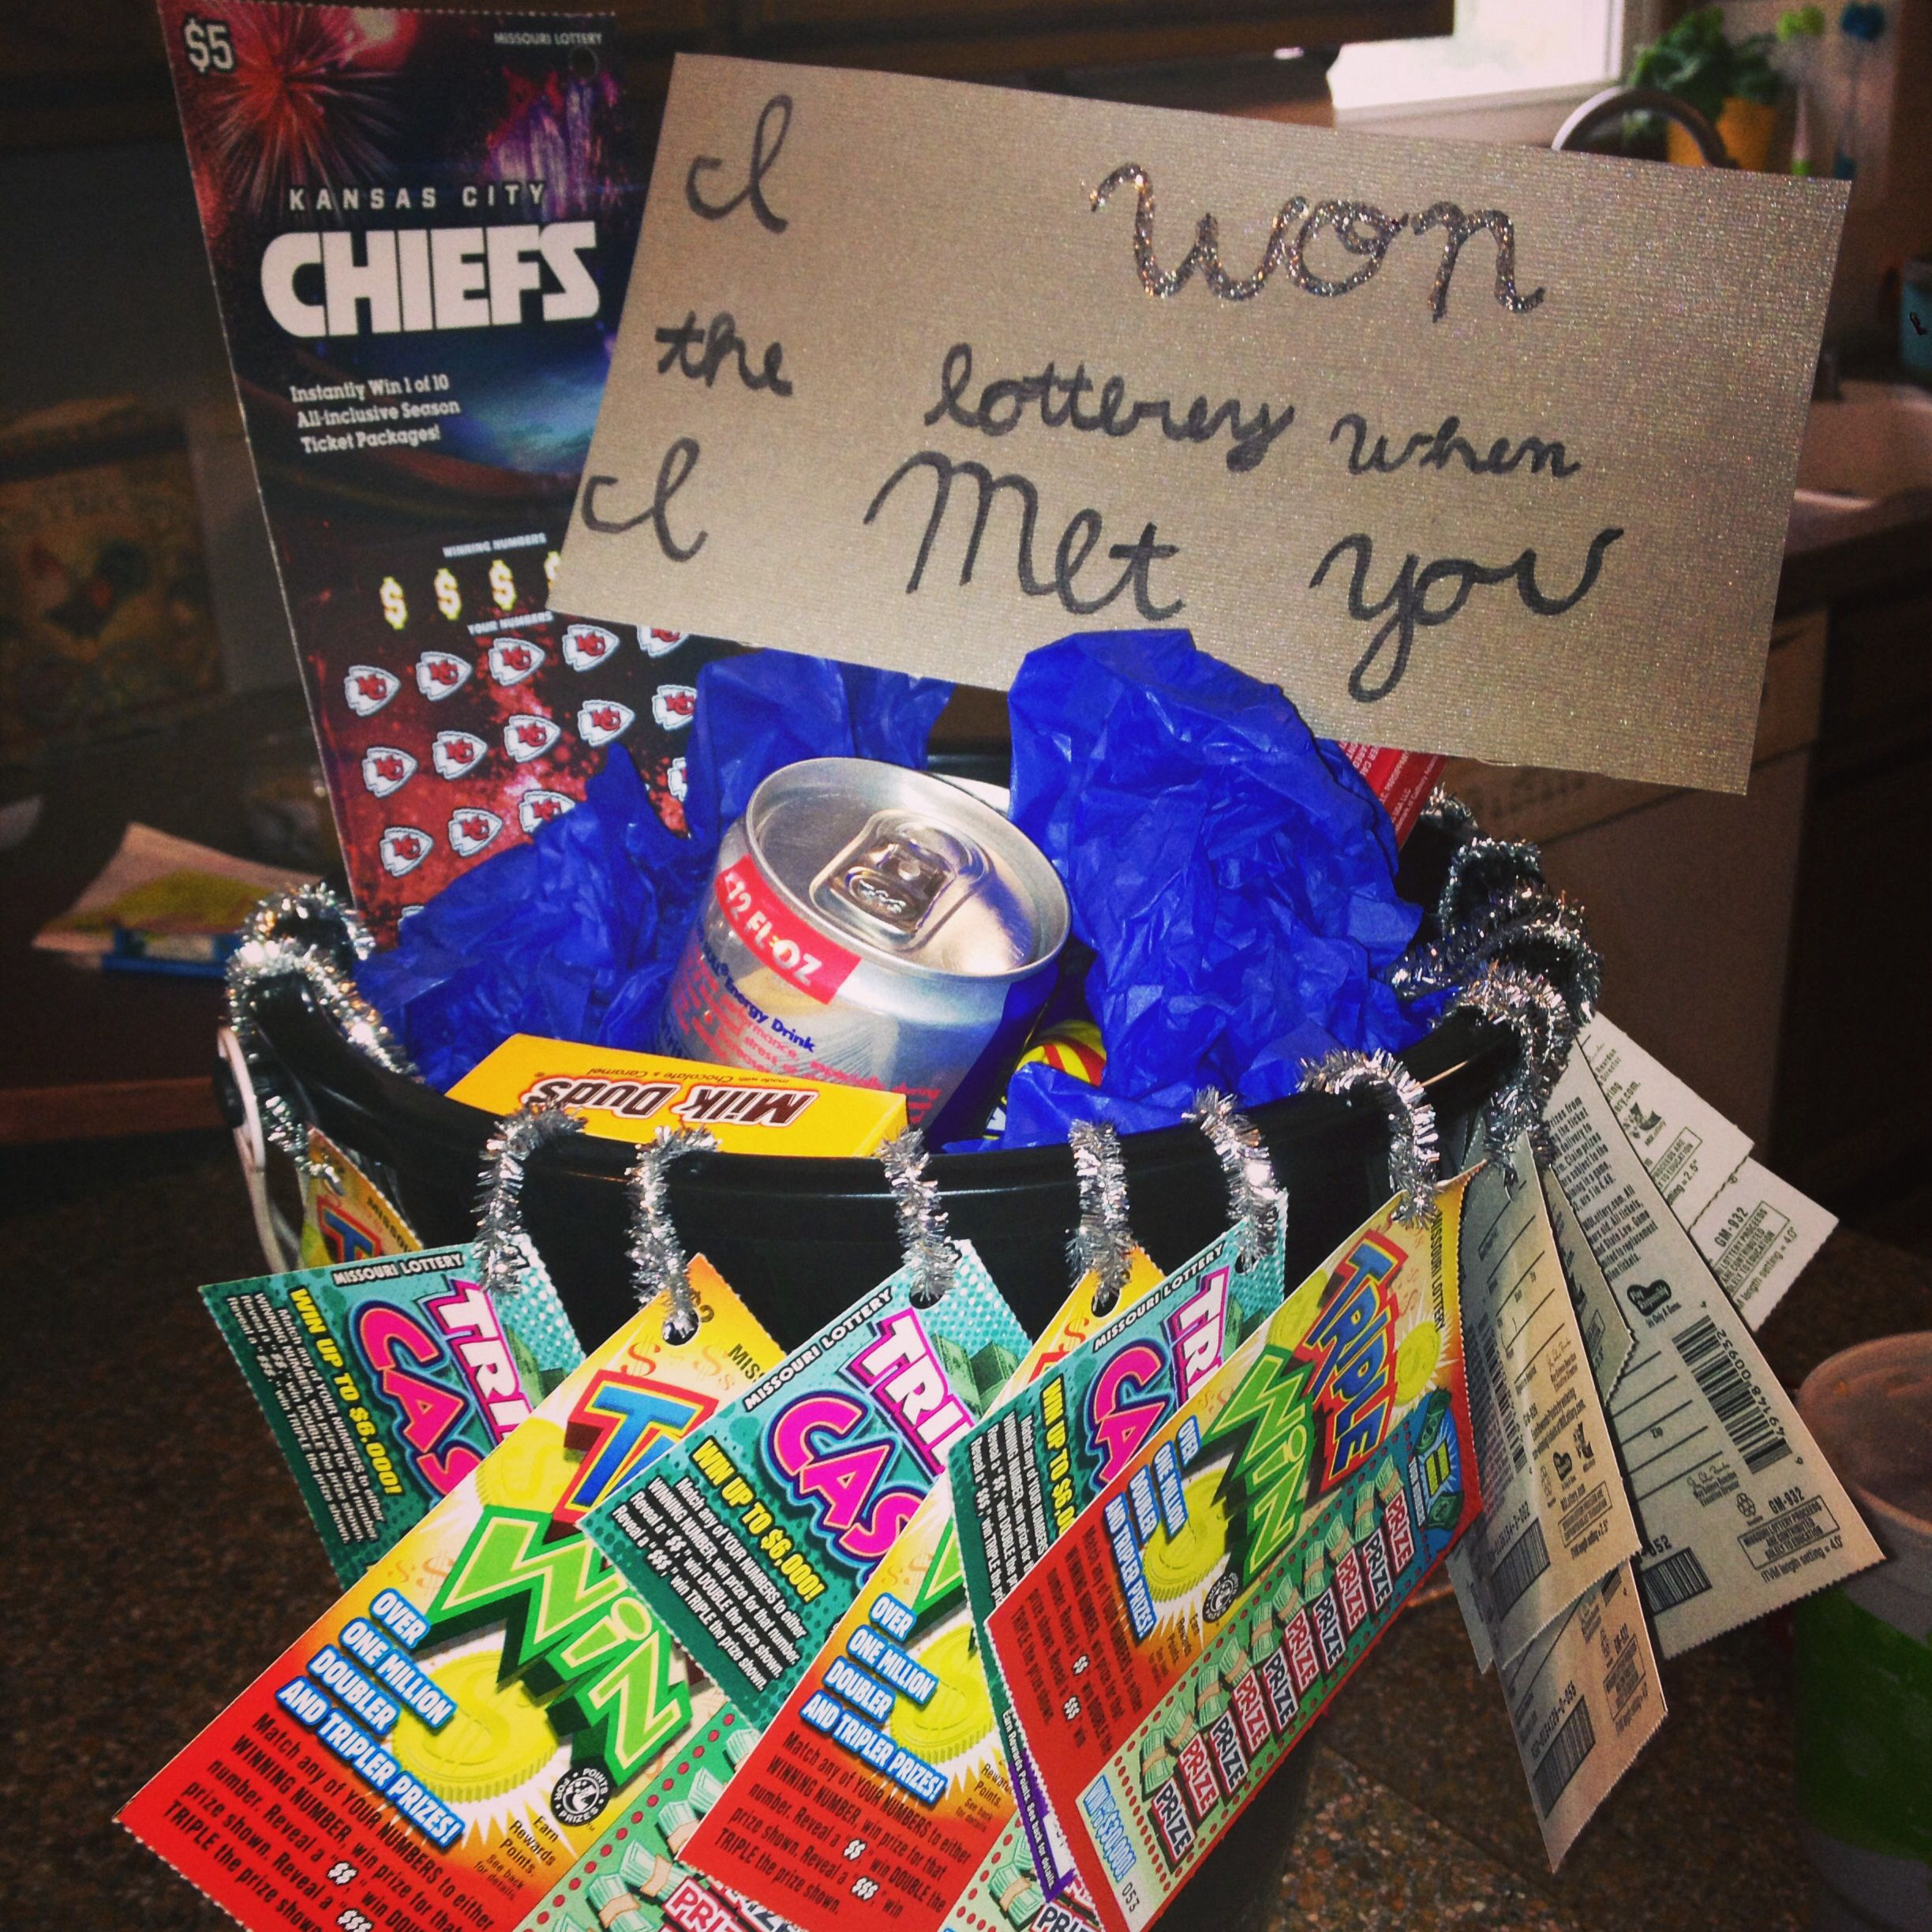 For the boyfriend. Keeping it cheesy! Cheesy gifts